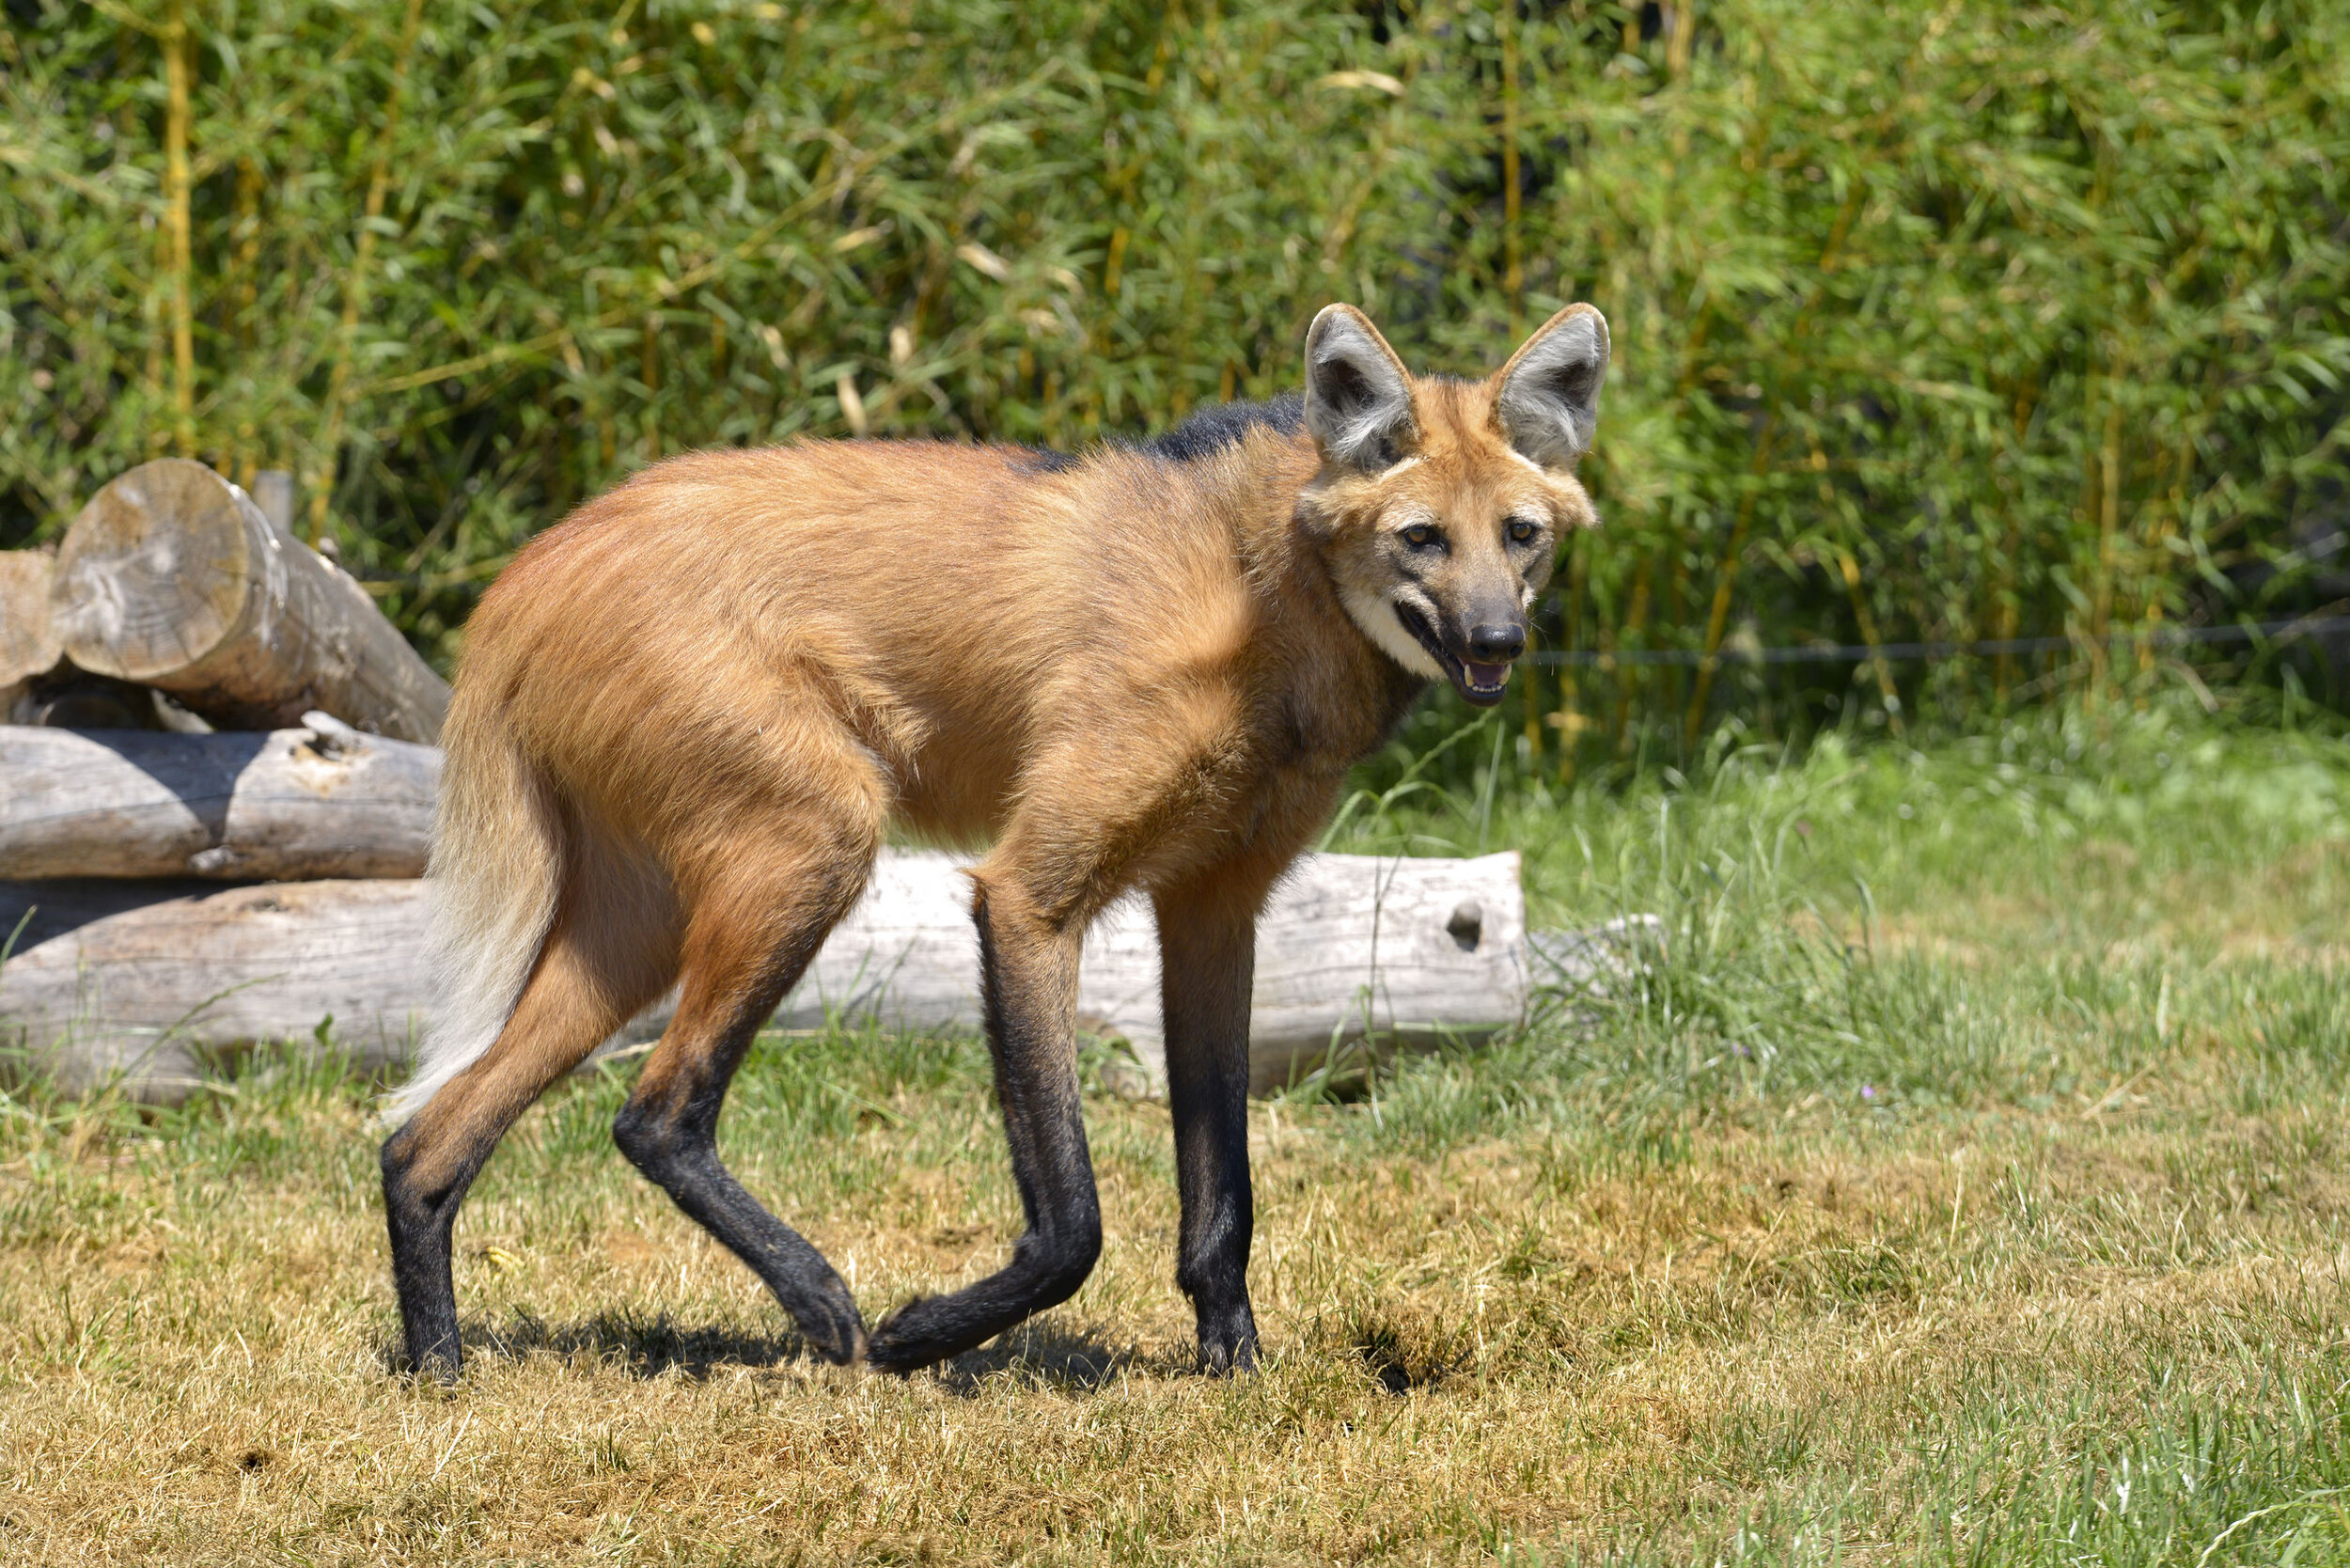 32: The maned wolf isn't a fox or a wolf.  https://www.youtube.com/watch?v=XSQ_ajl3cvE